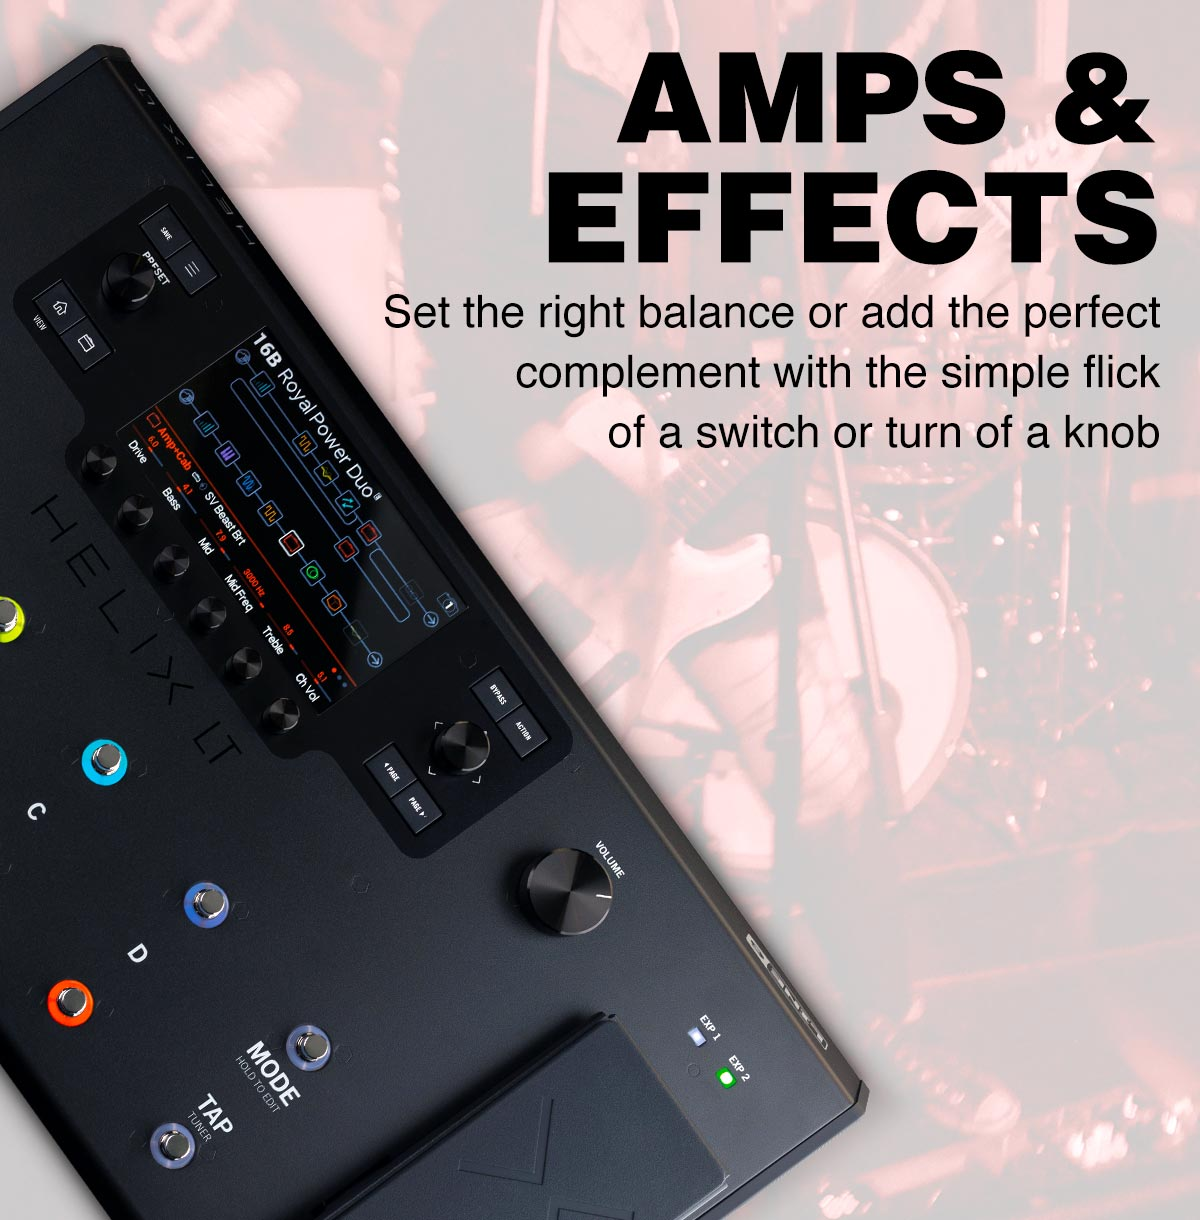 Amps and Efffts. Set the right balance or add  the perfect complement with the simple flick of a switch or tun of a knob